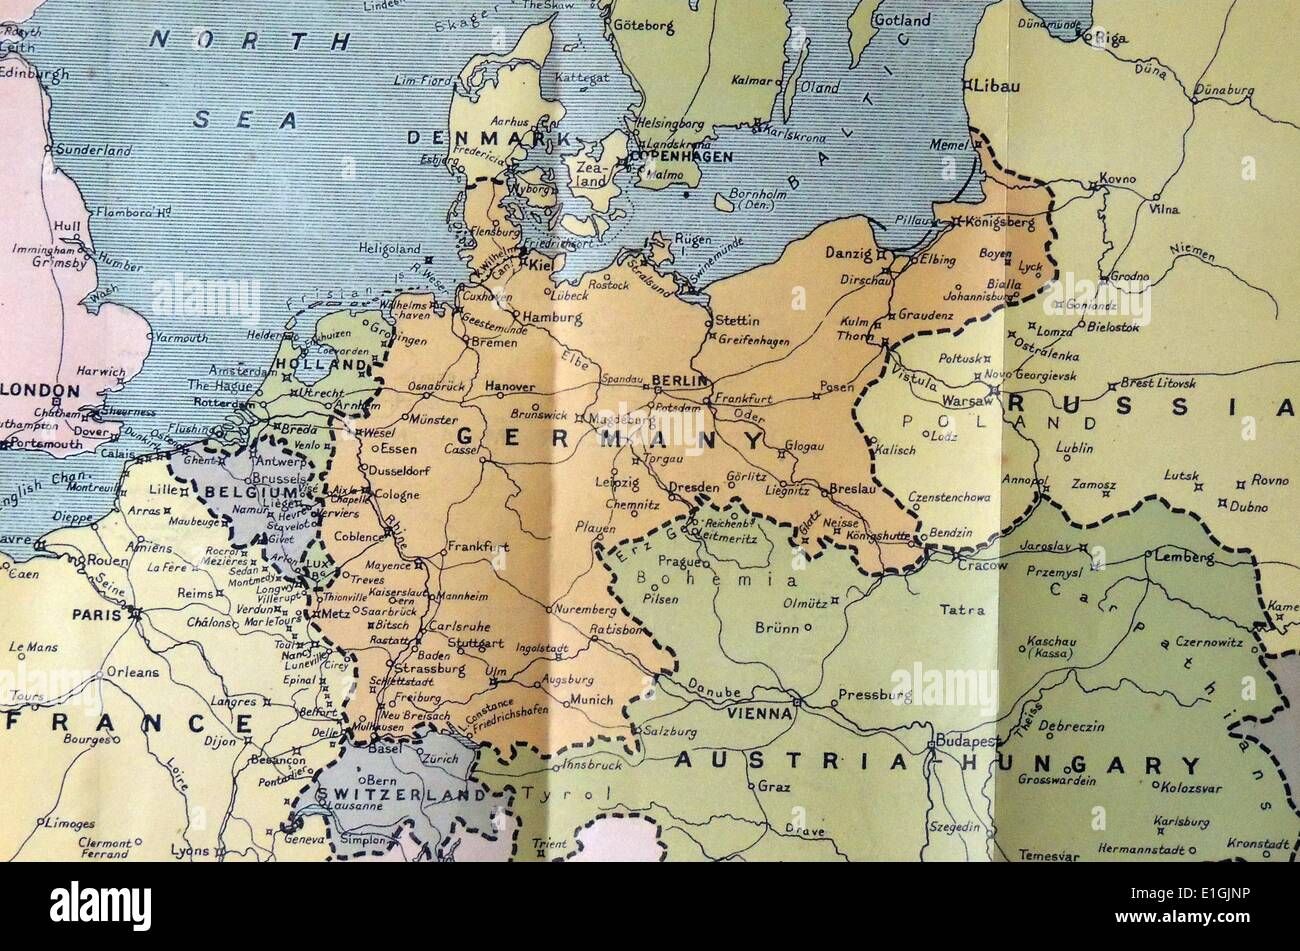 Map Of Germany In 1914.Map Of Germany Poland And The Low Countriin 1914 Stock Photo